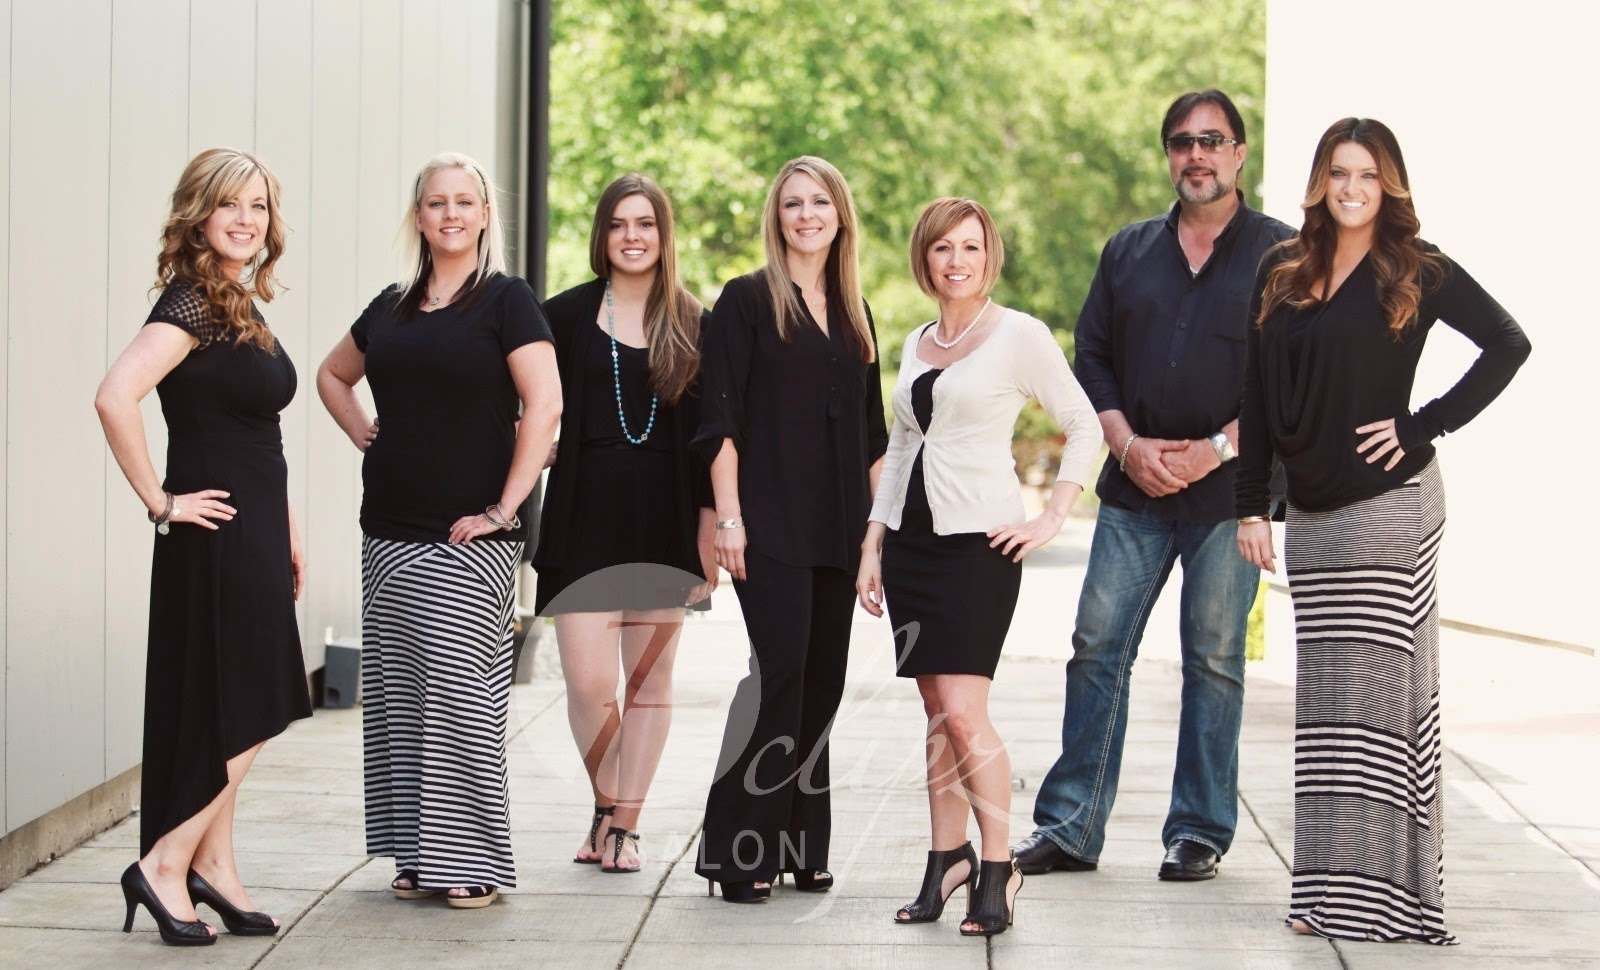 Eclipz Salon Team in Bothell